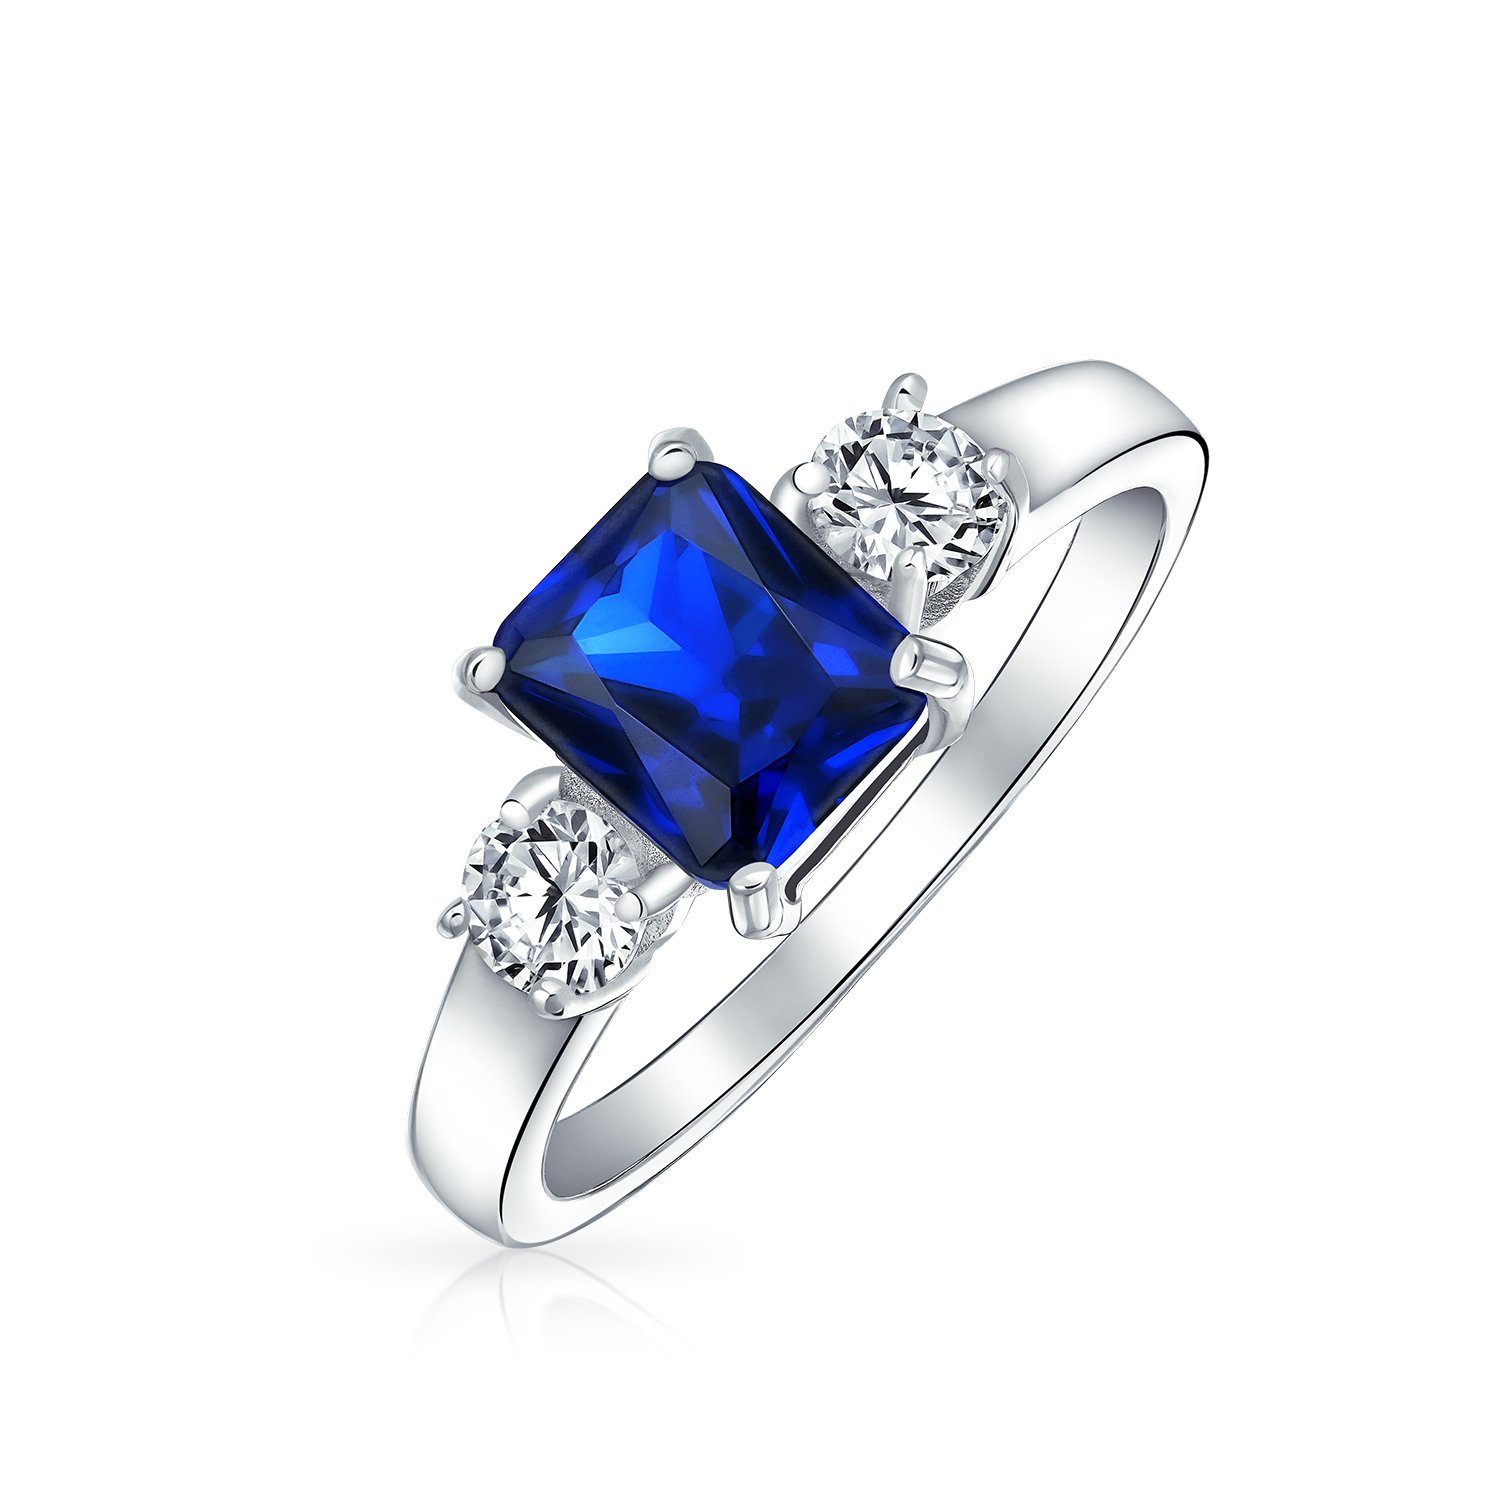 Bling Jewelry Sterling Silver 1.5 ct Emerald Cut Blue Sapphire Color CZ Three Stone Engagement Ring - Size 7